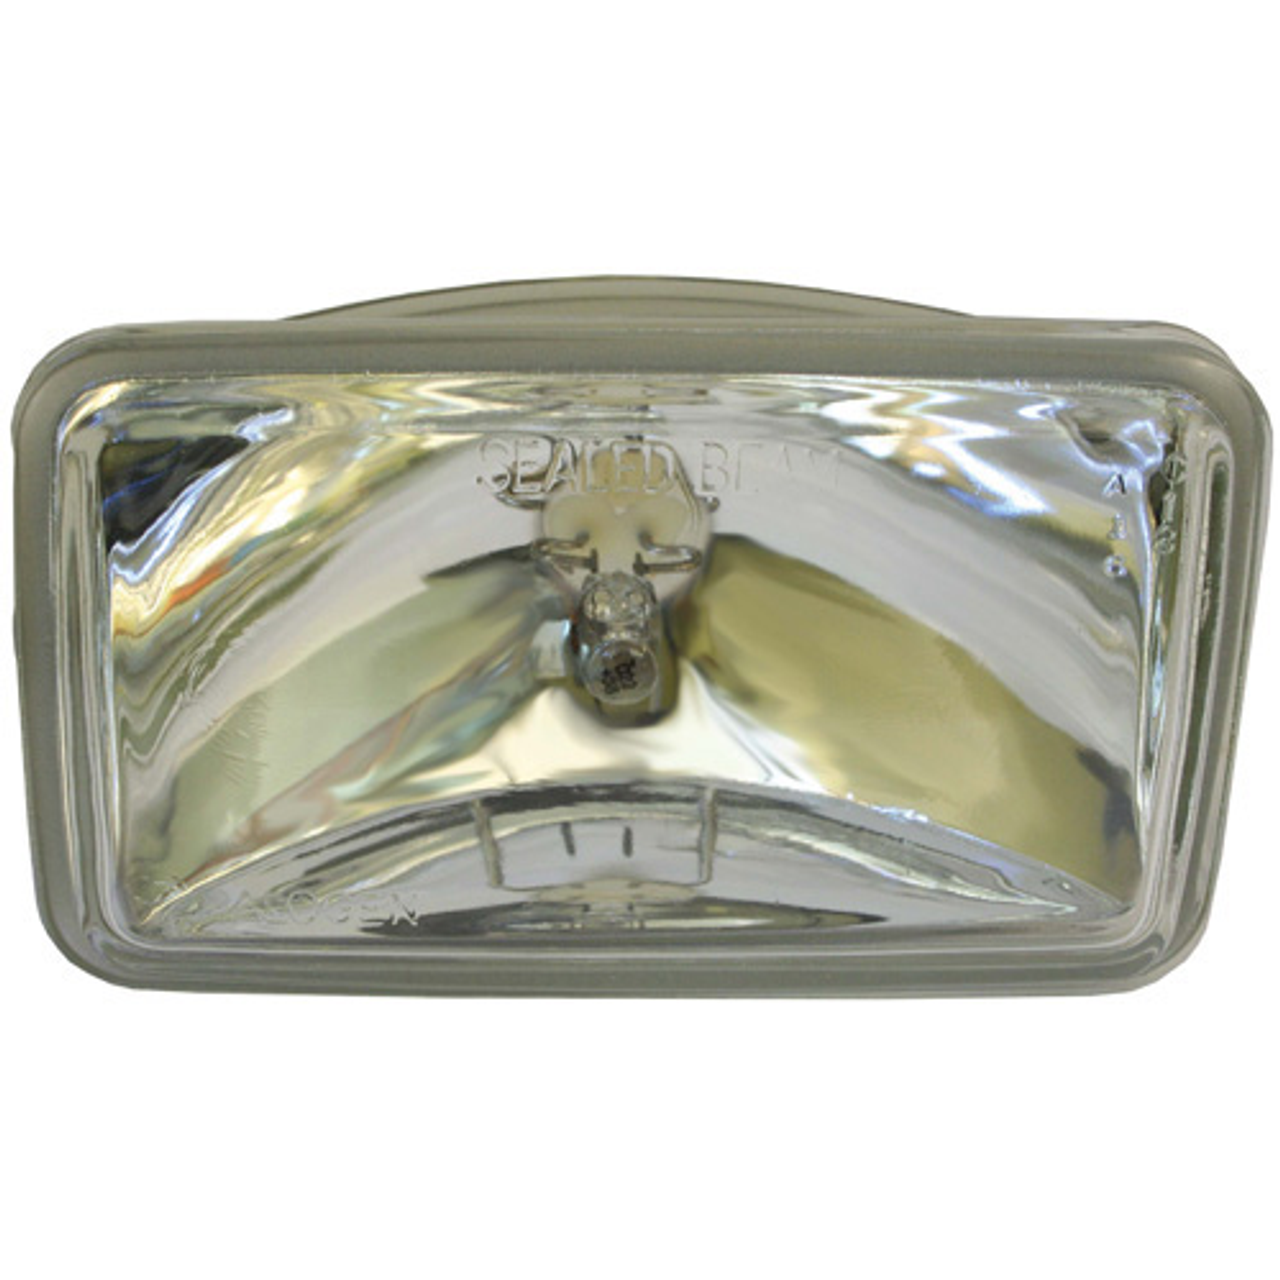 Jabsco Replacement Bulbs (J65-102 to J65-122)